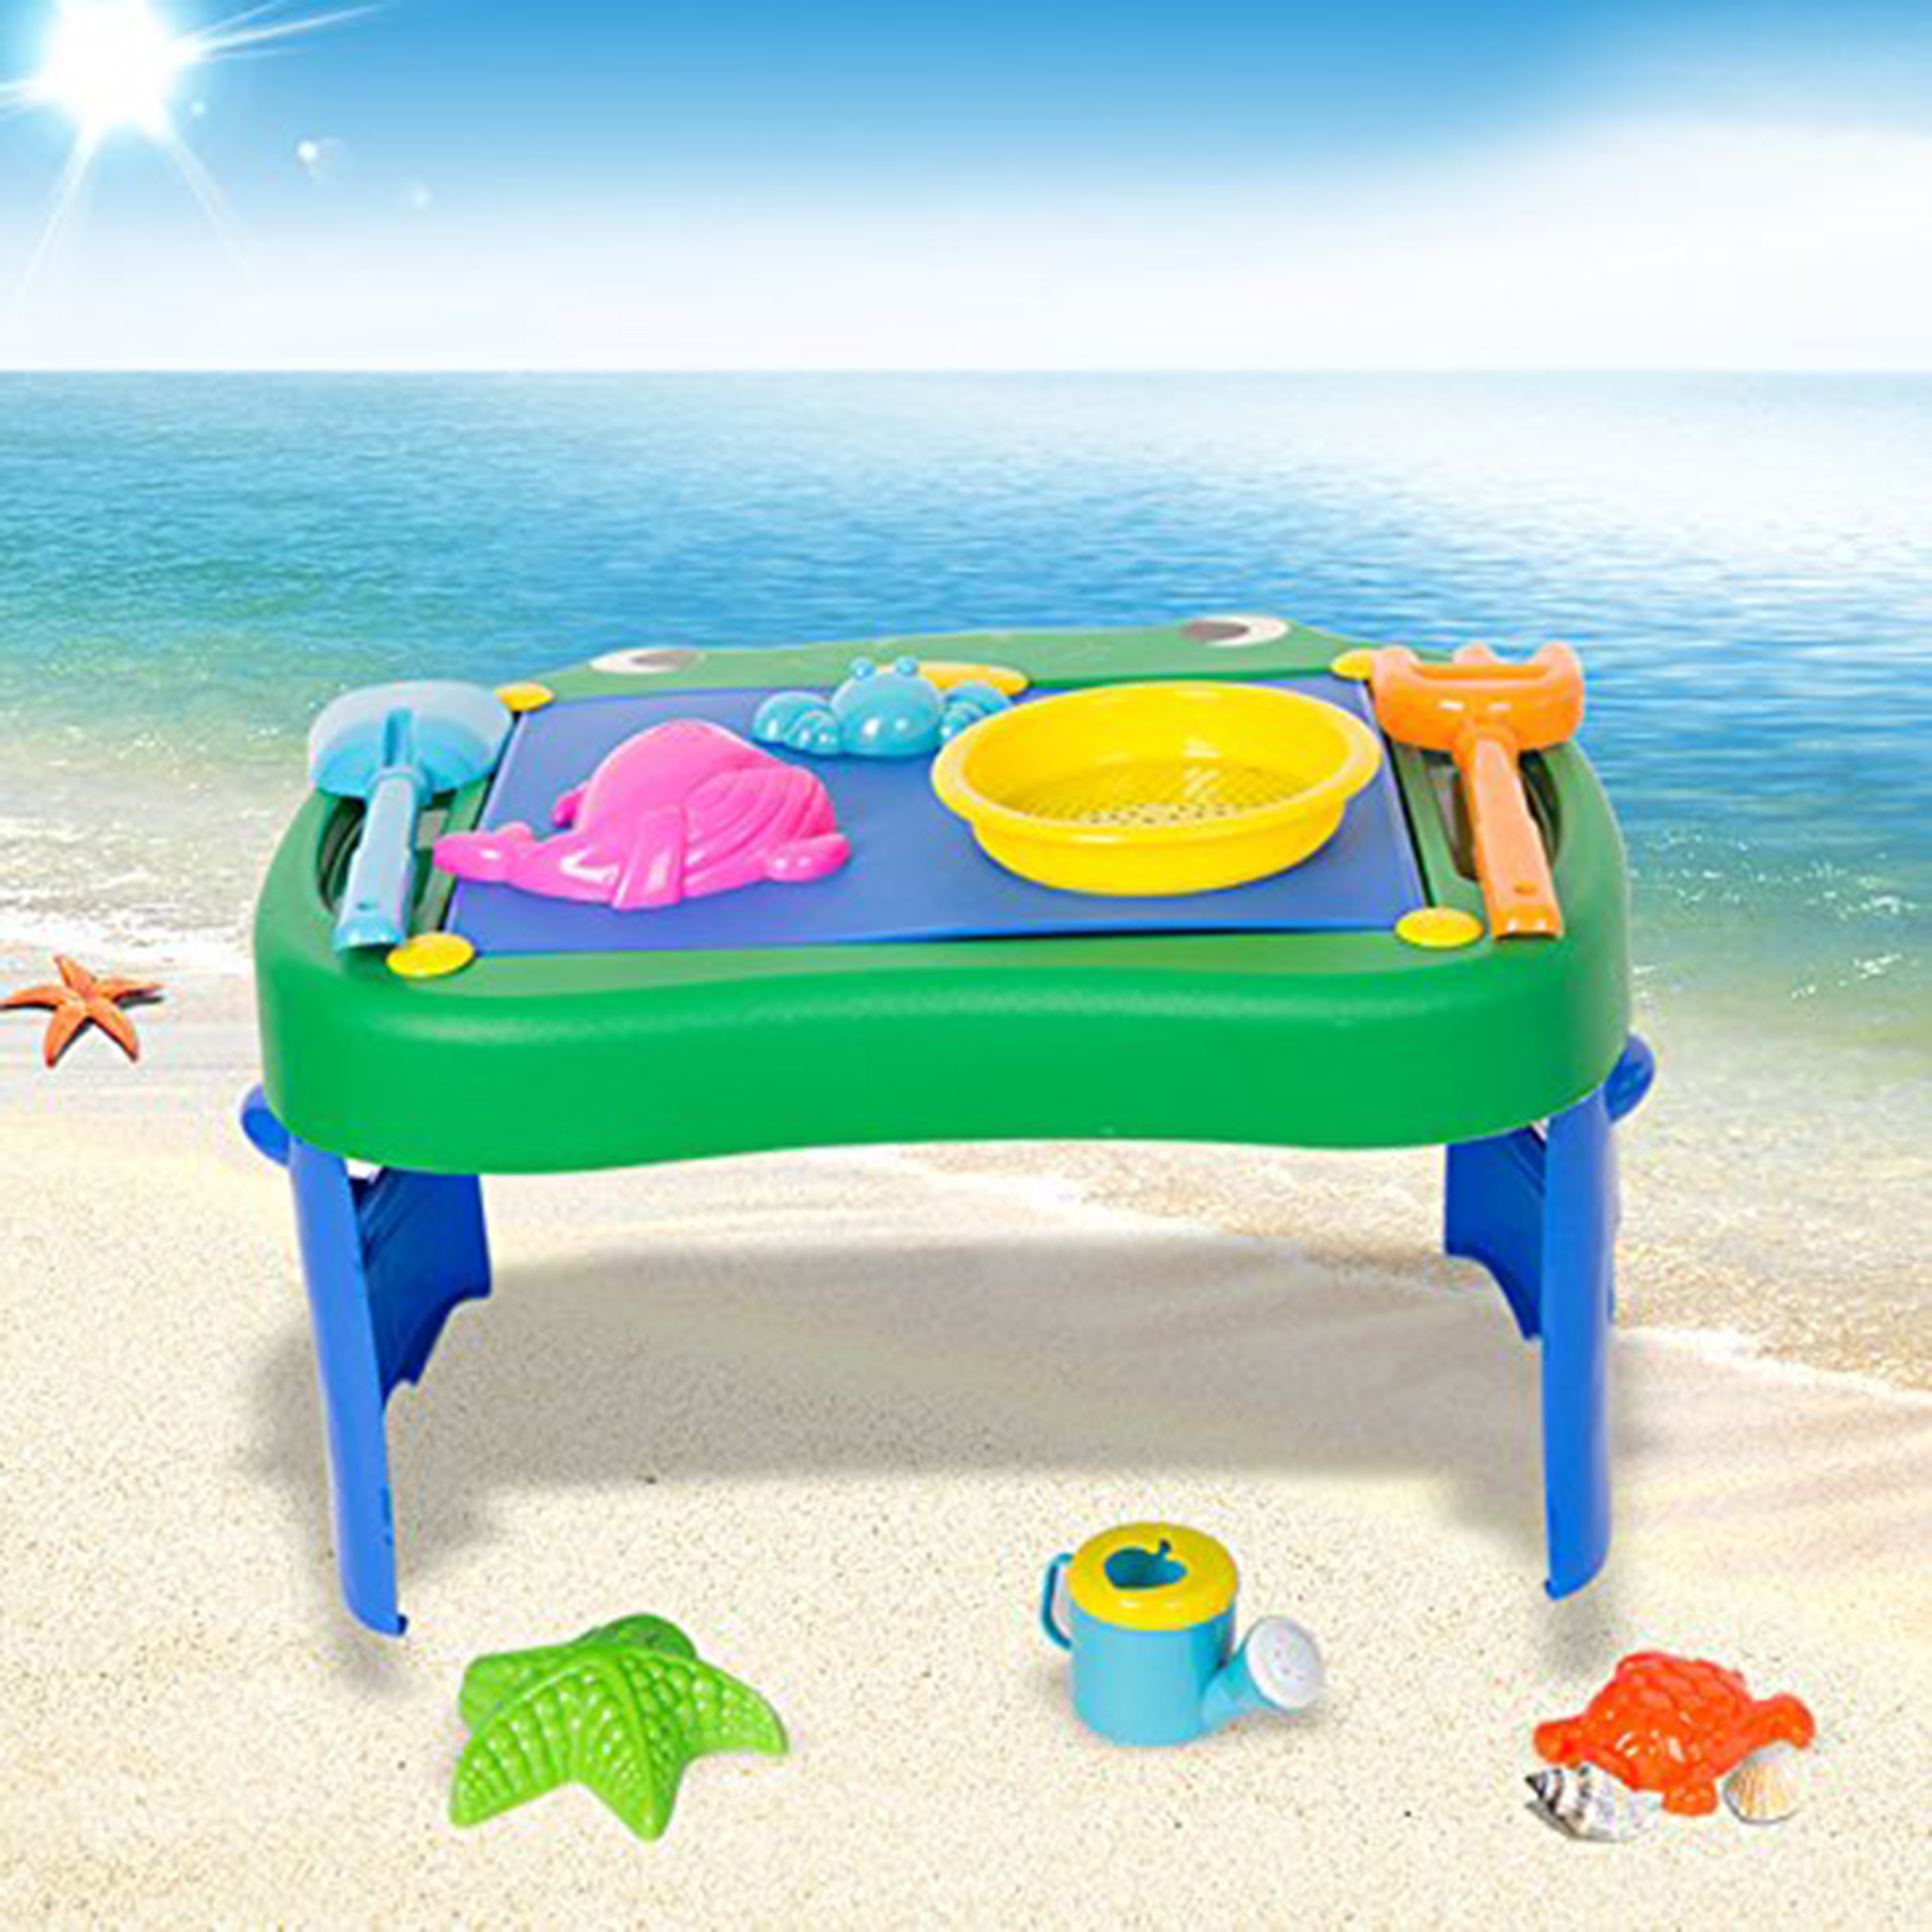 KARMAS PRODUCT Sand Beach Toys Play Set for Kids&Todder by KARMAS PRODUCT